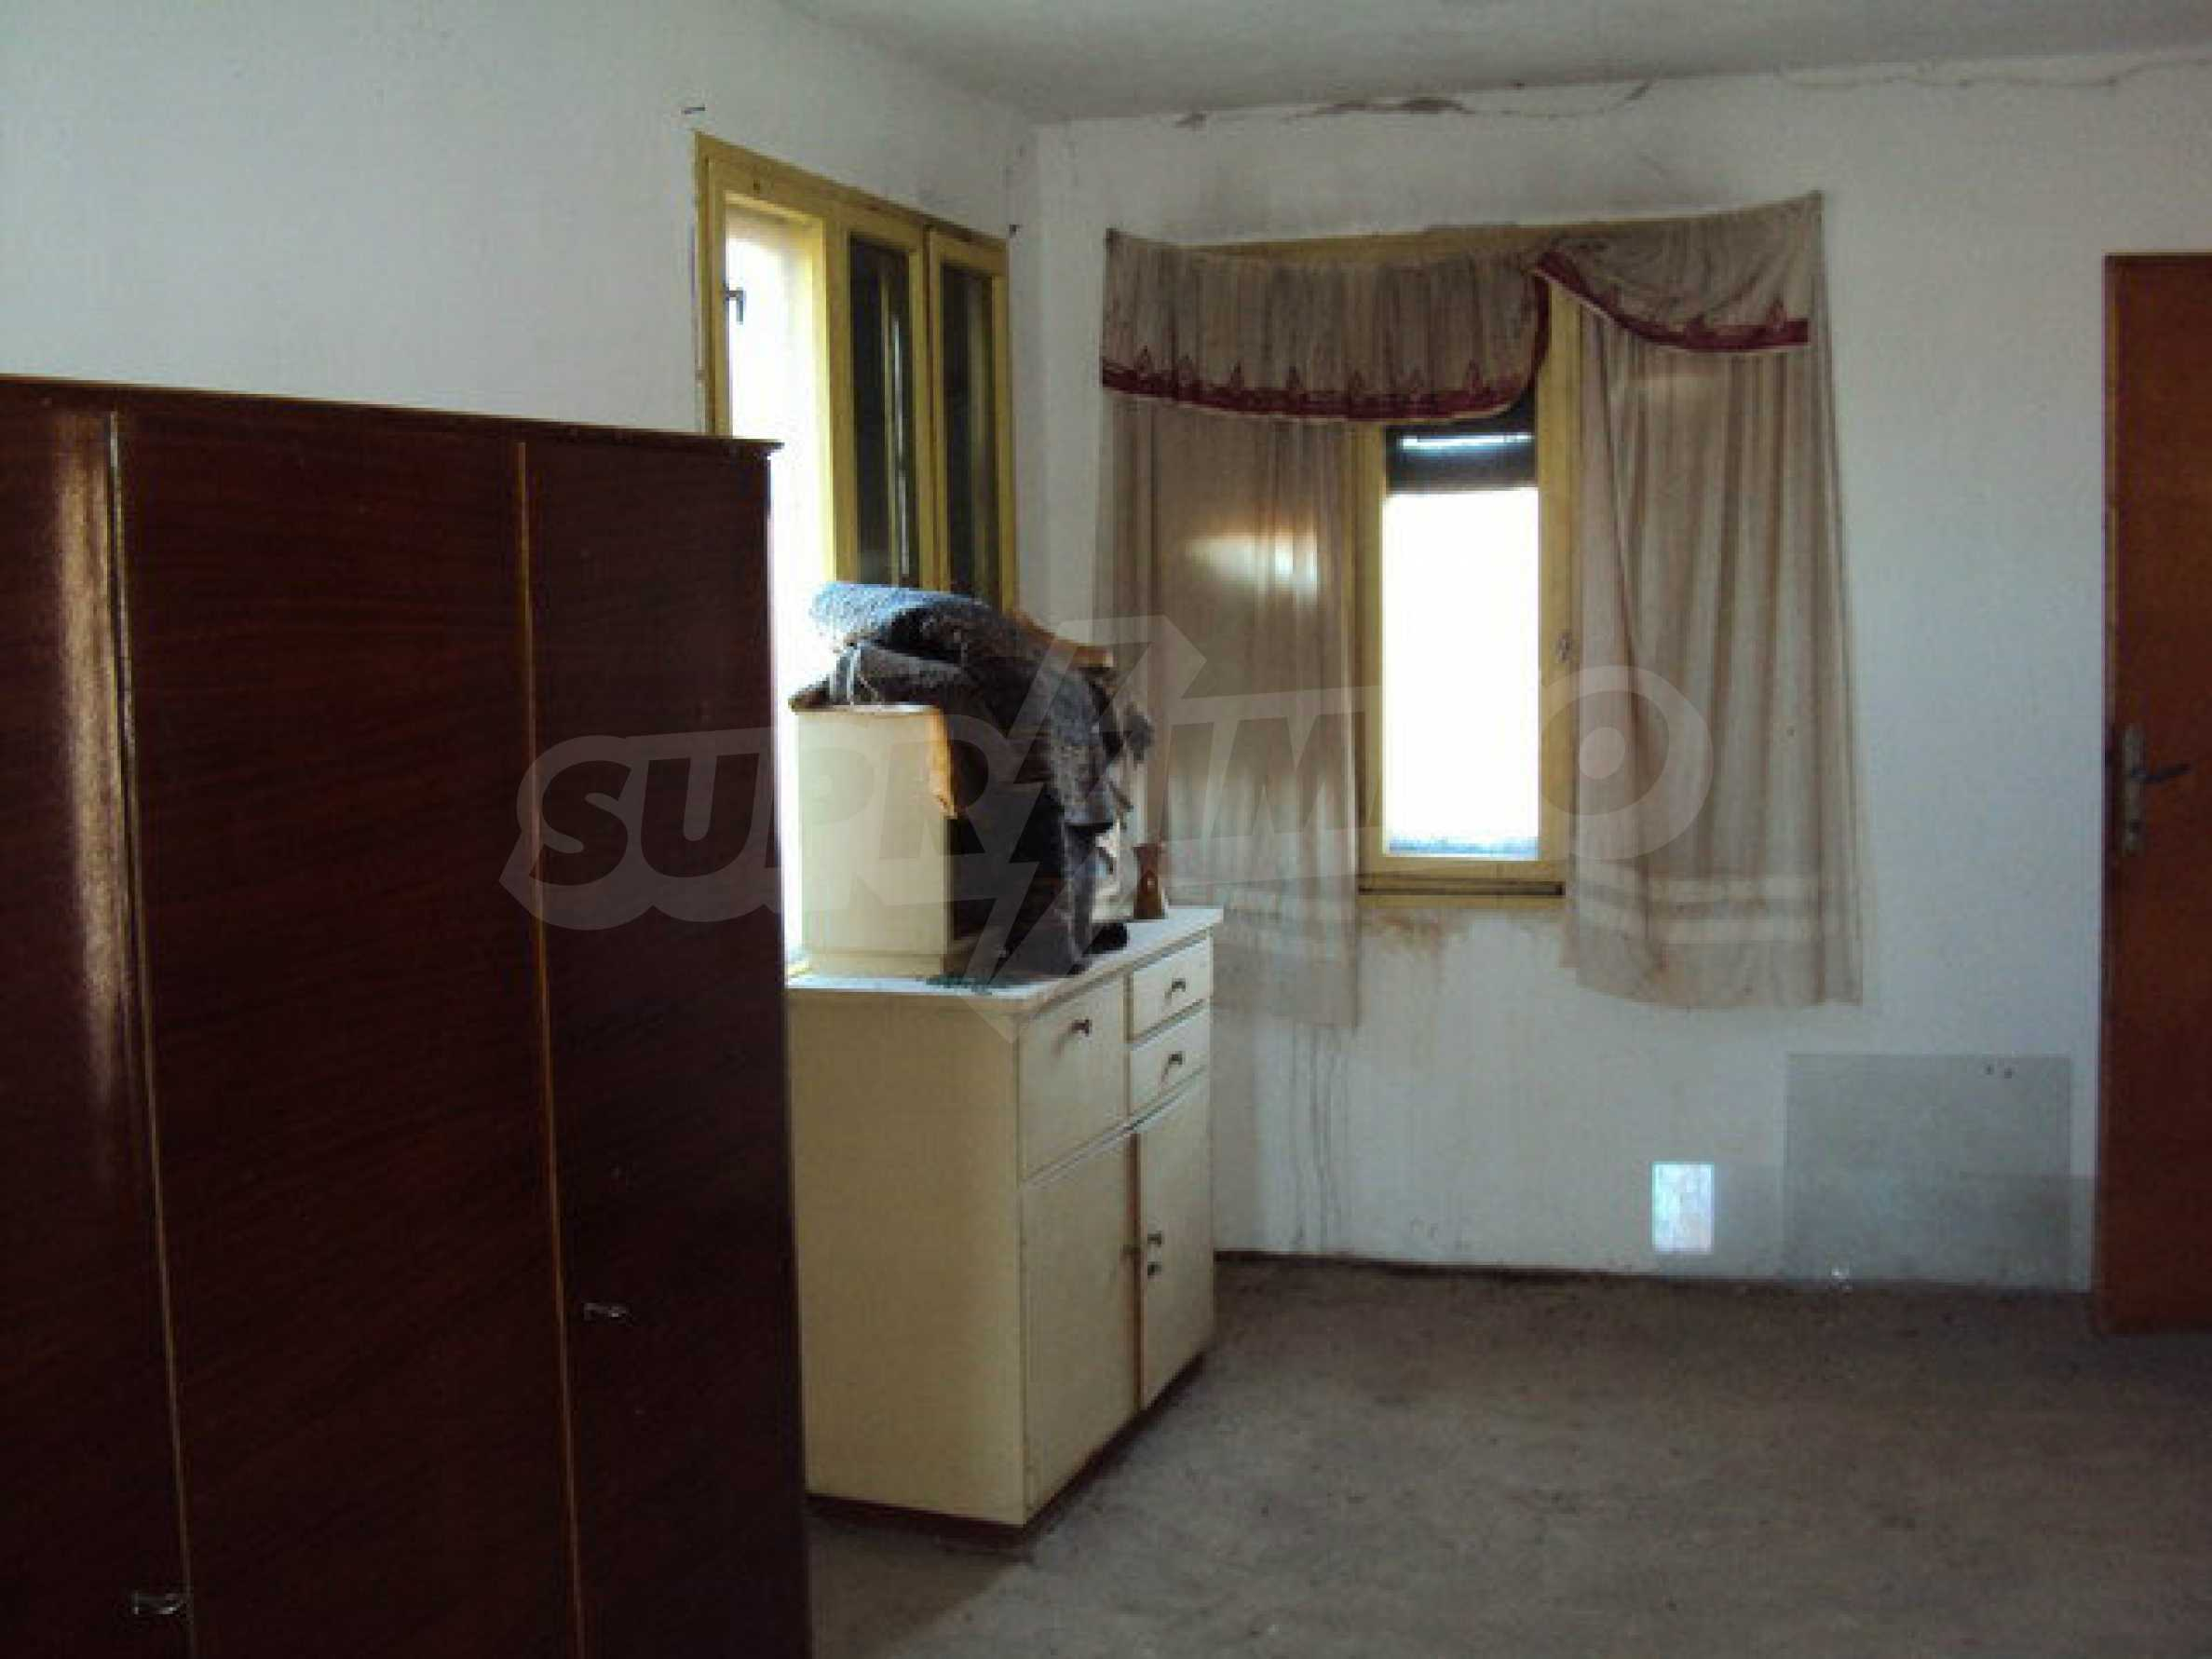 Spacious house in excellent condition in a village 25 km. the old capital of Veliko Tarnovo 37